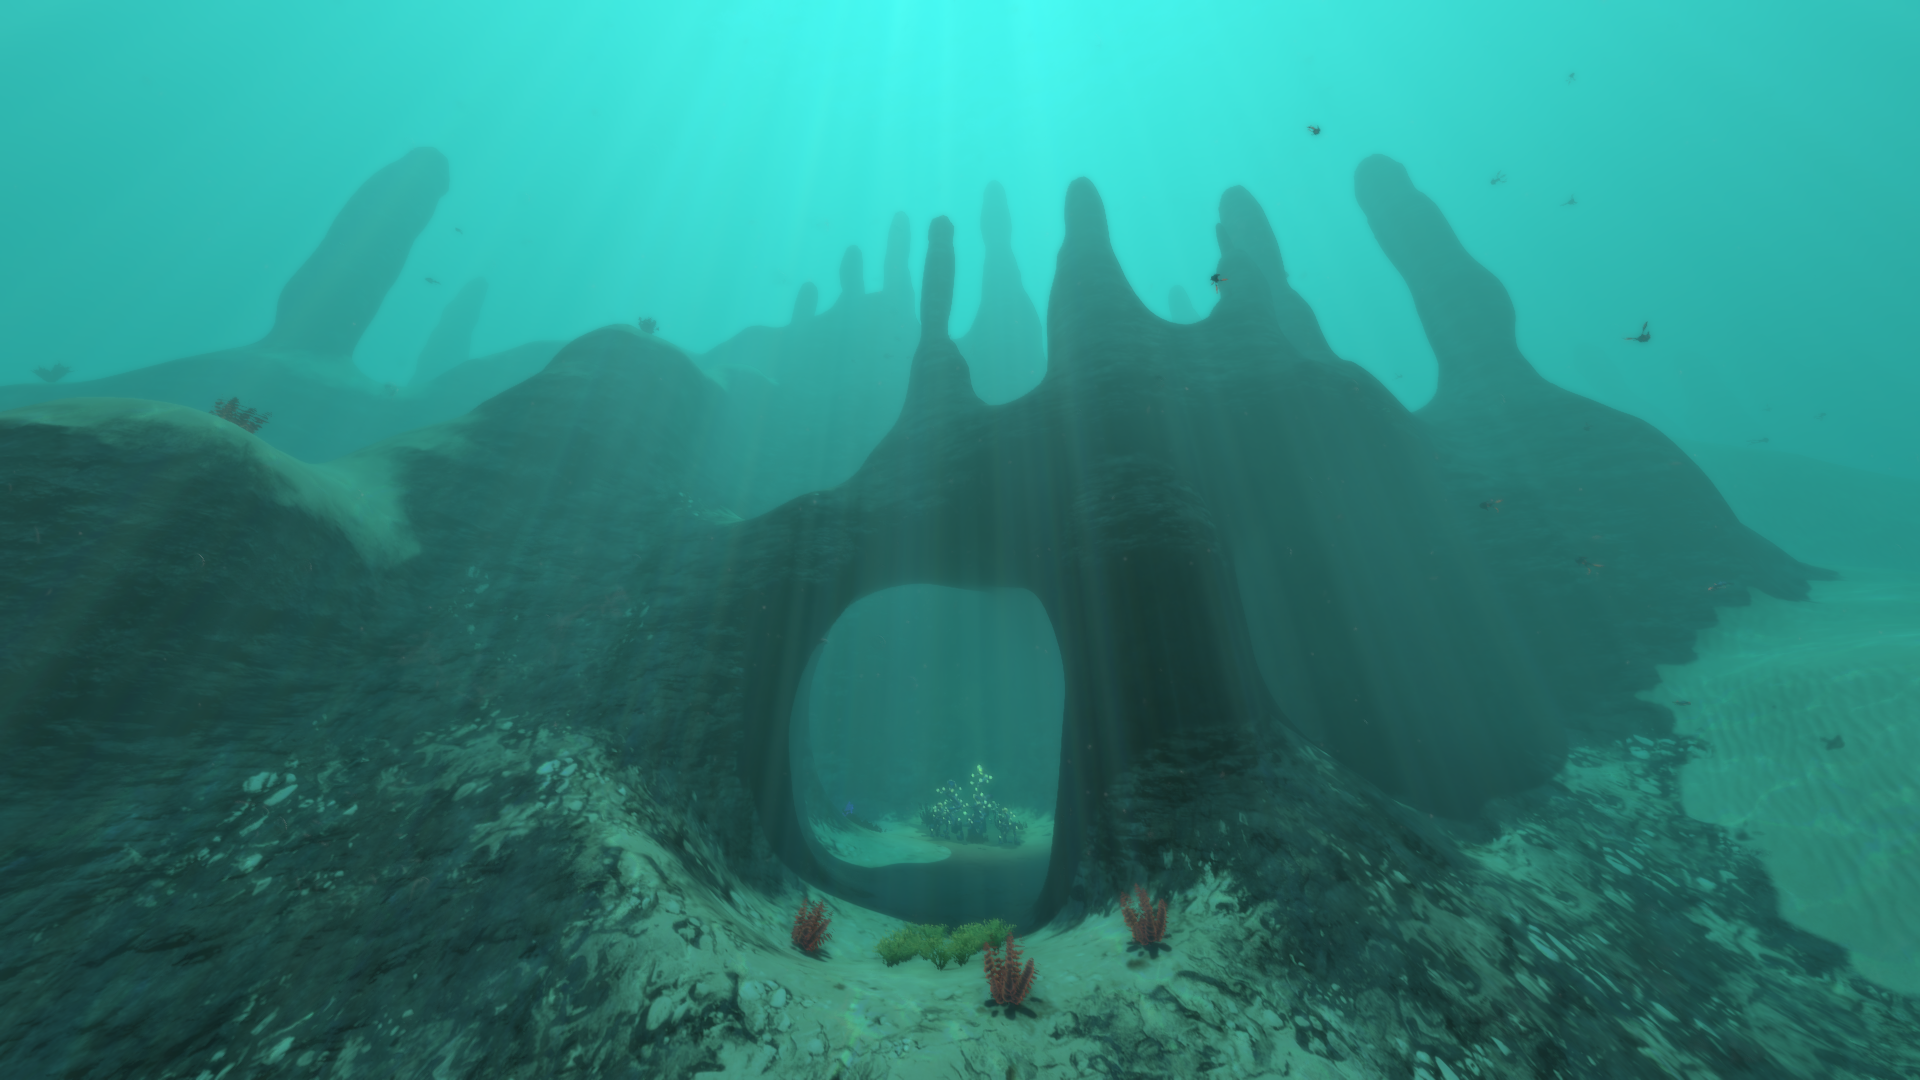 Sparse Reef Biome